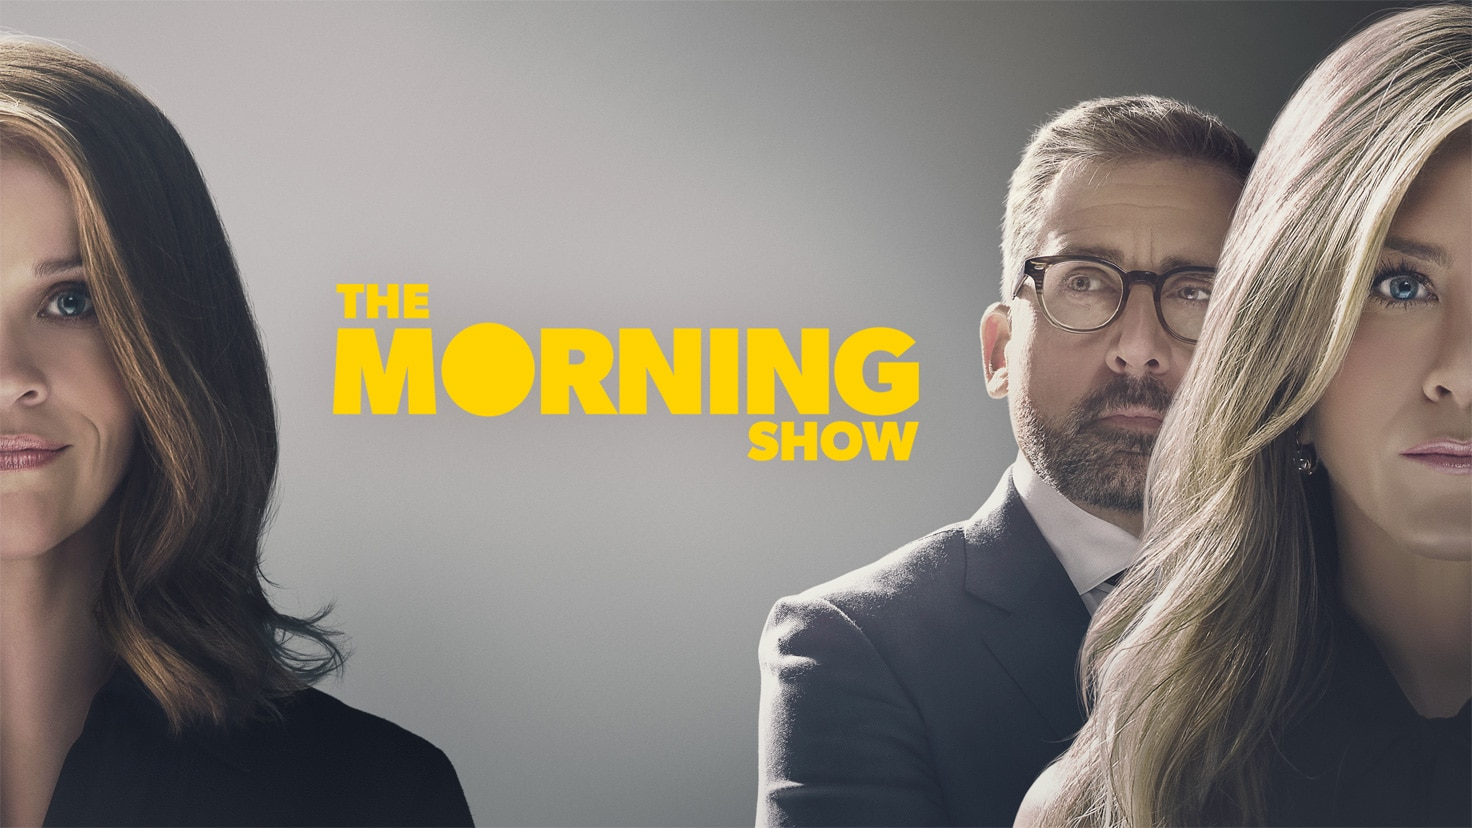 Filming for 'The Morning Show' resumes in the middle of October.